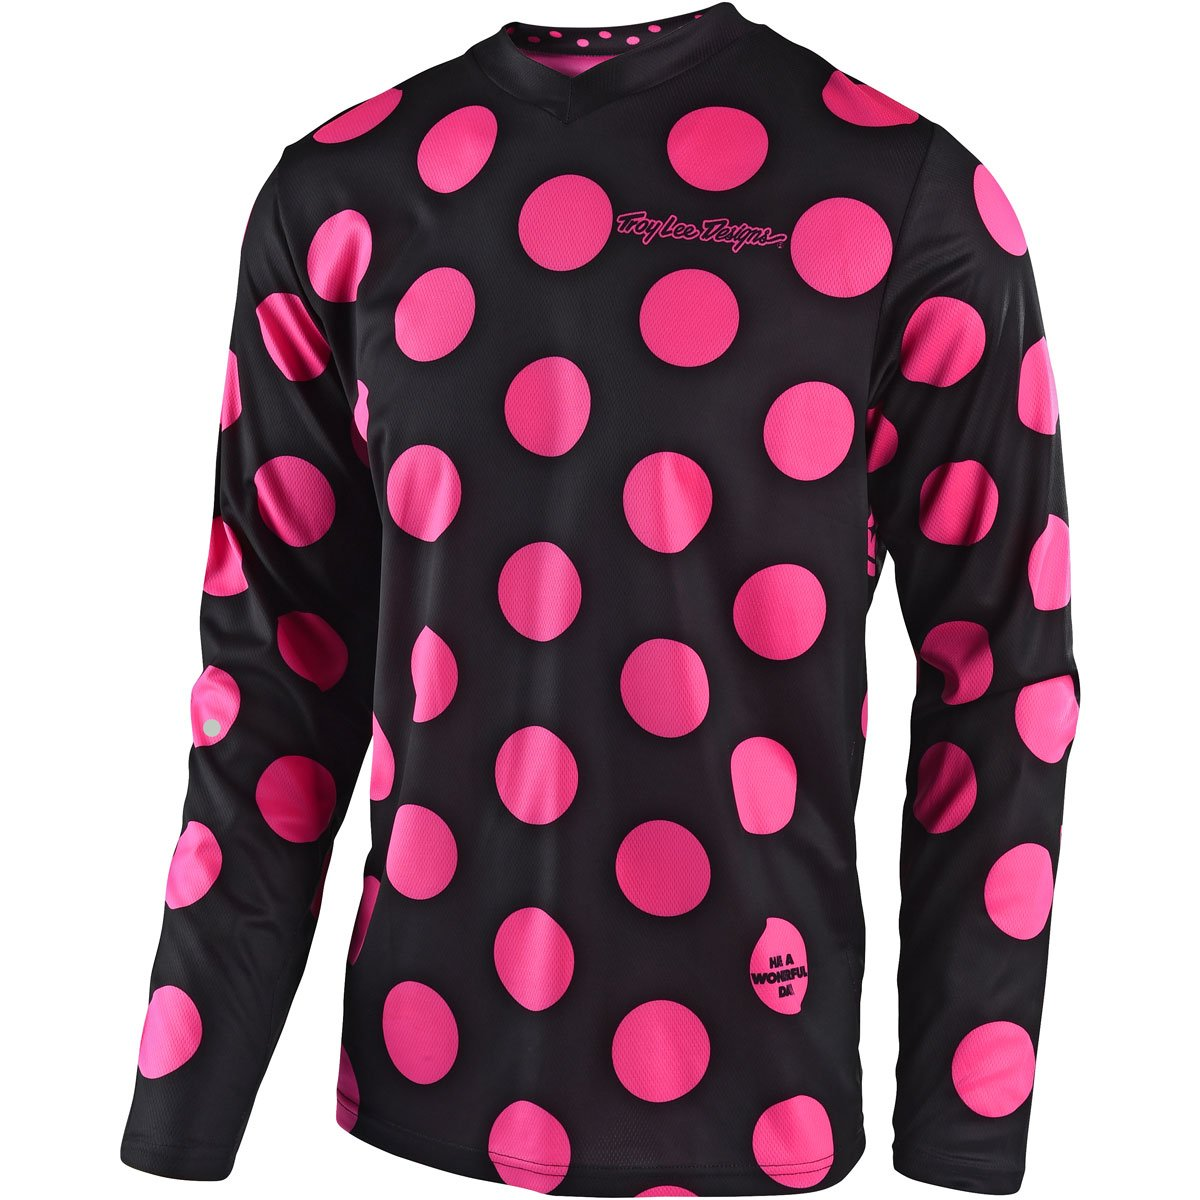 Troy Lee Designs 2018 GP Polka Dot Jersey-Black/Flo Pink-L